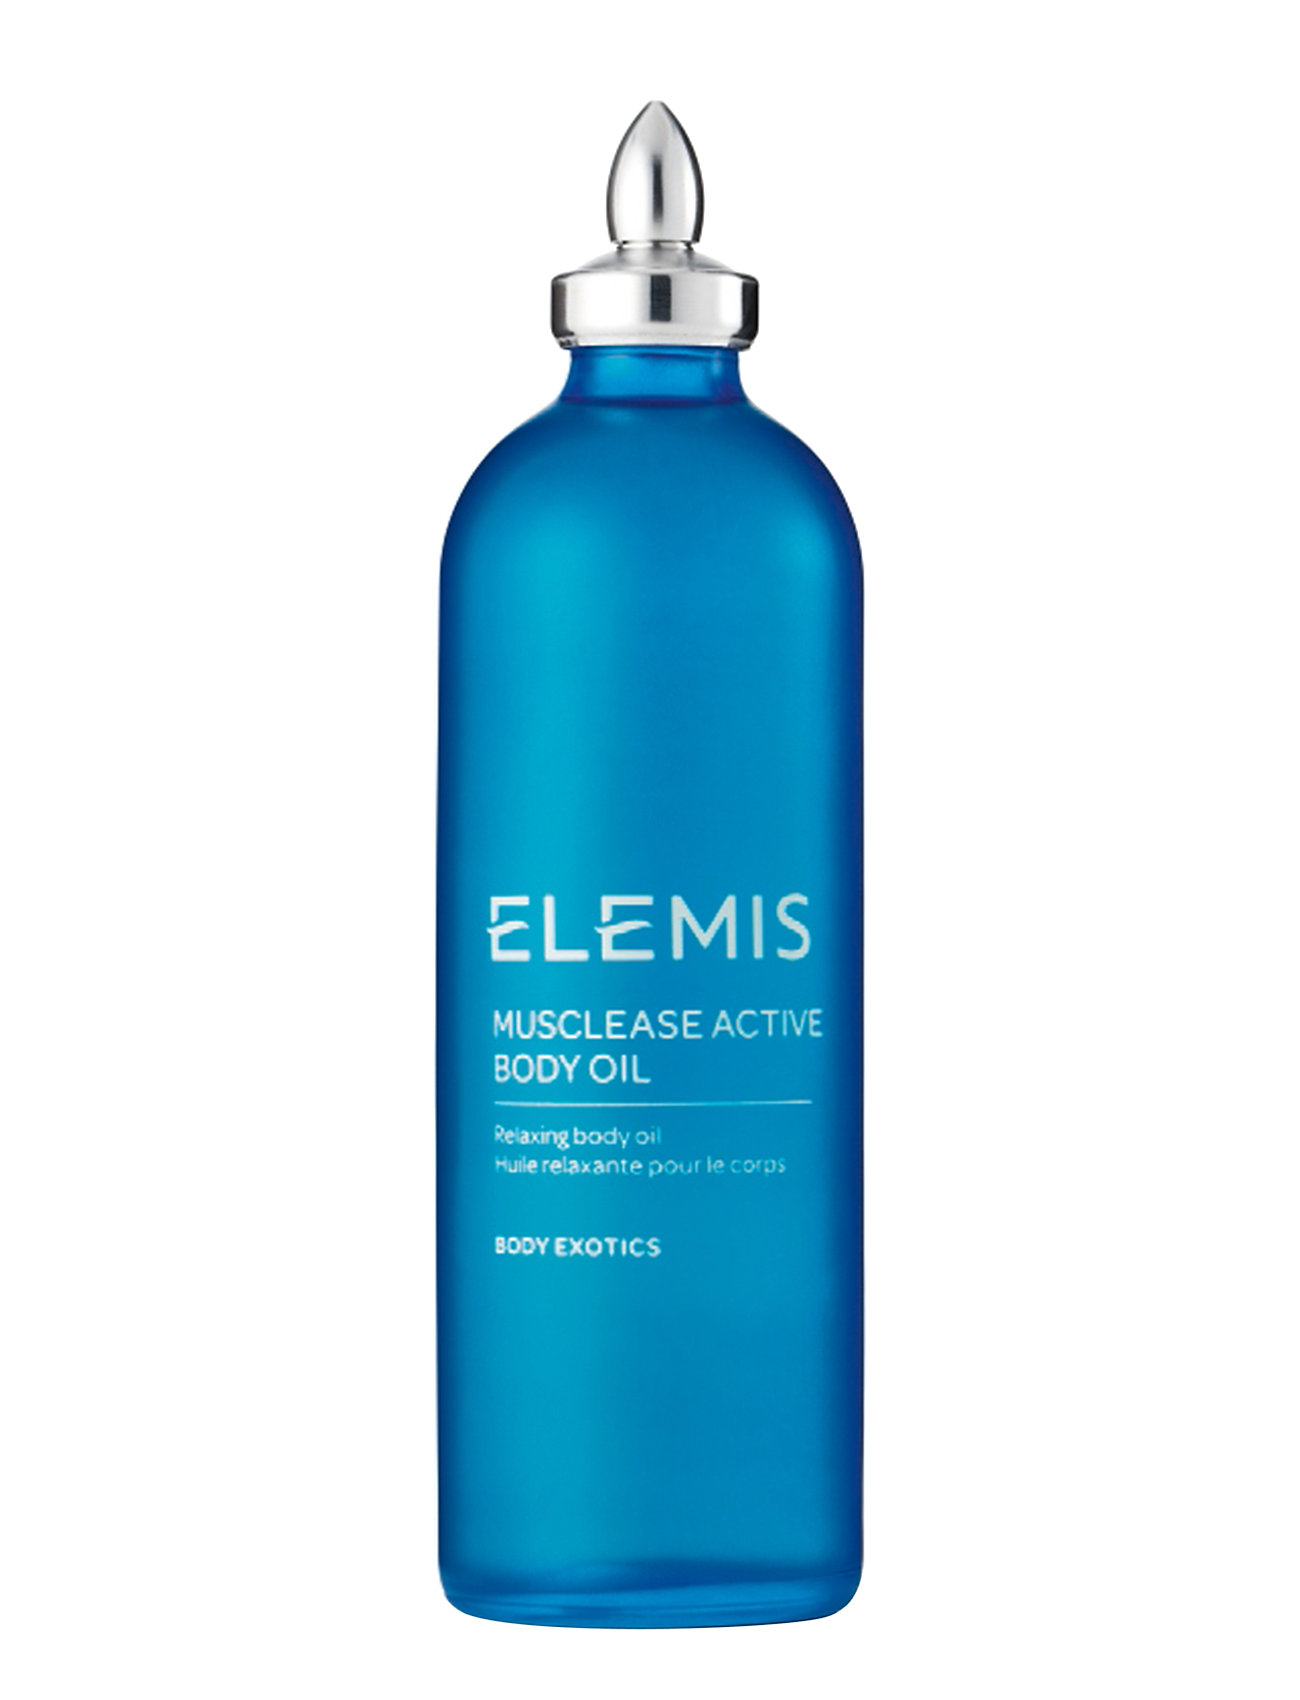 Elemis Musclease Active Body Oil - CLEAR